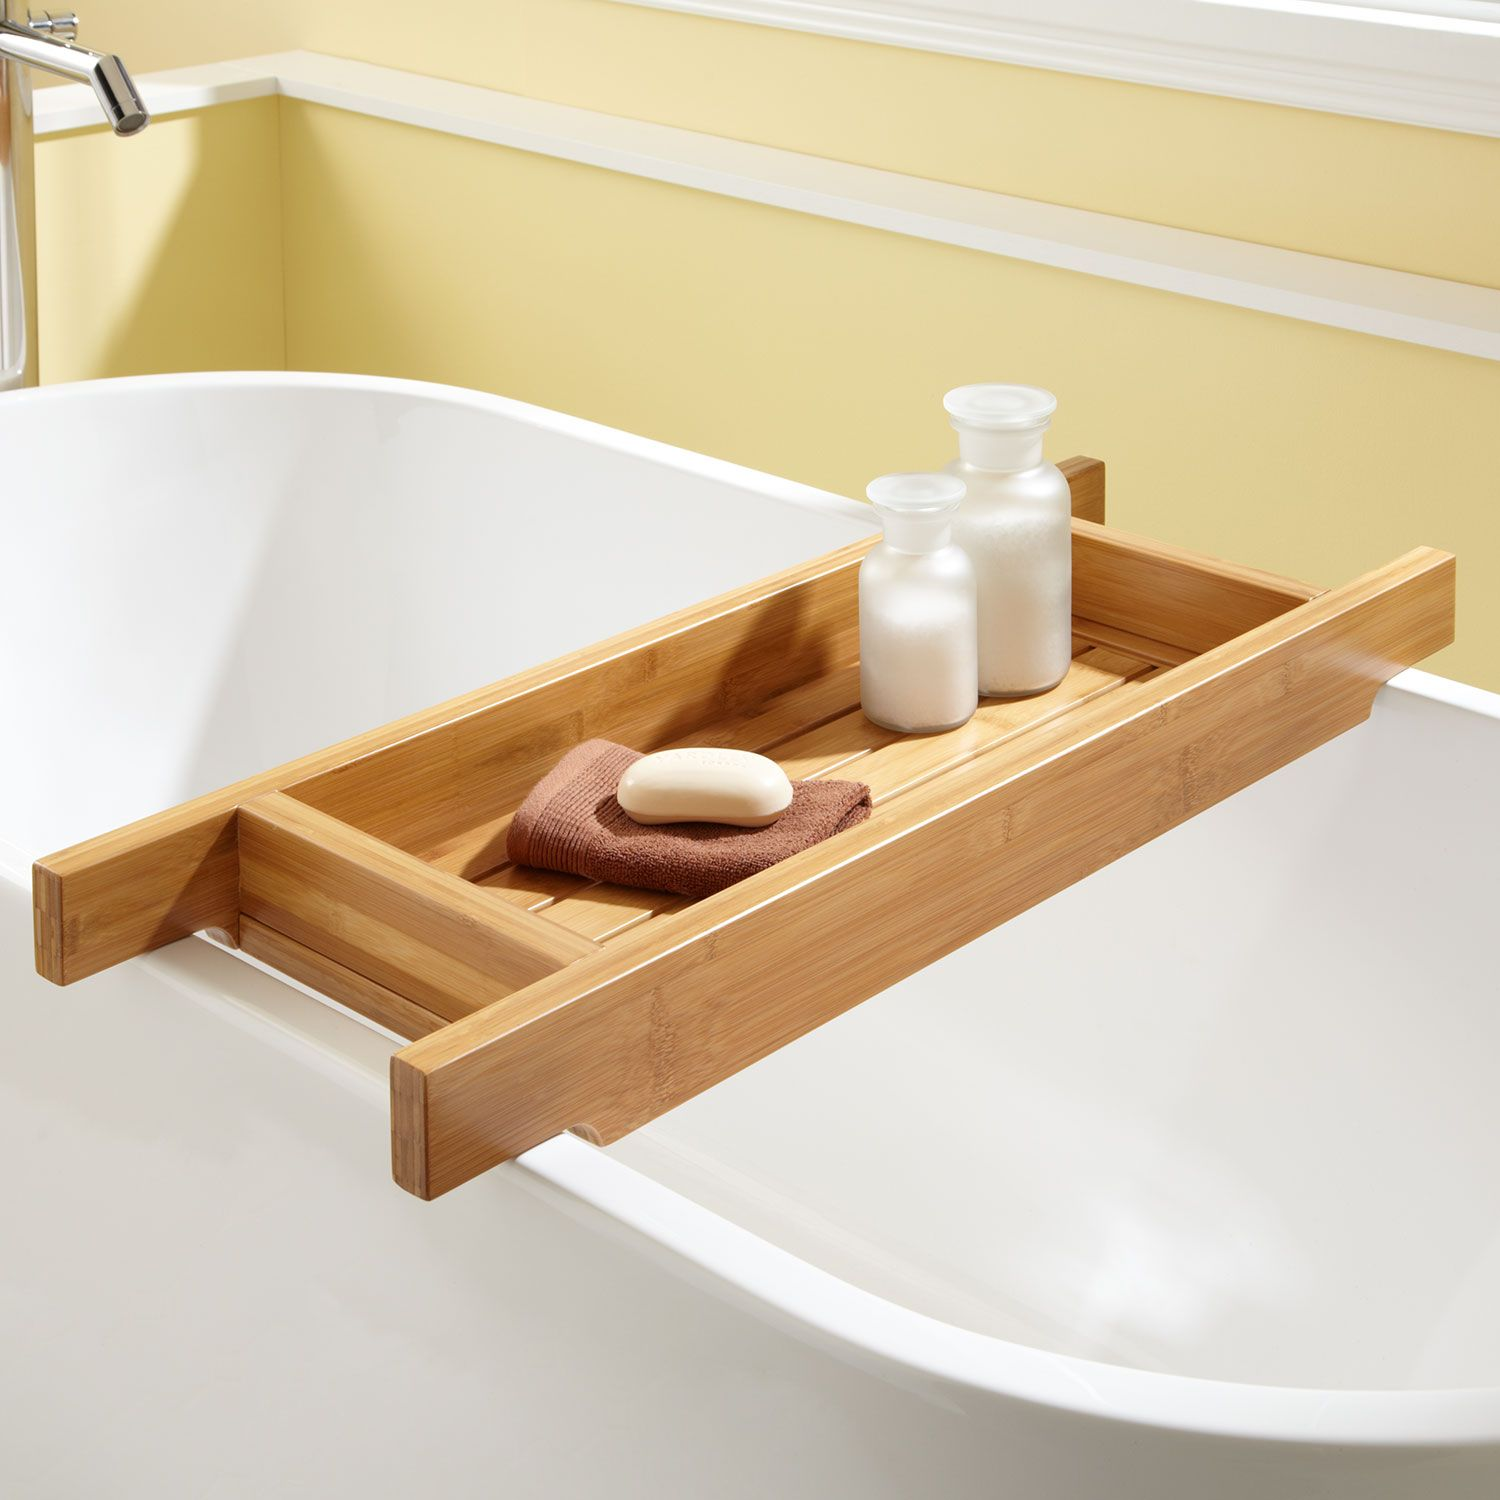 Bathtub Caddy Tub Caddies And Bathtub Shelves 33 Hancock Bamboo